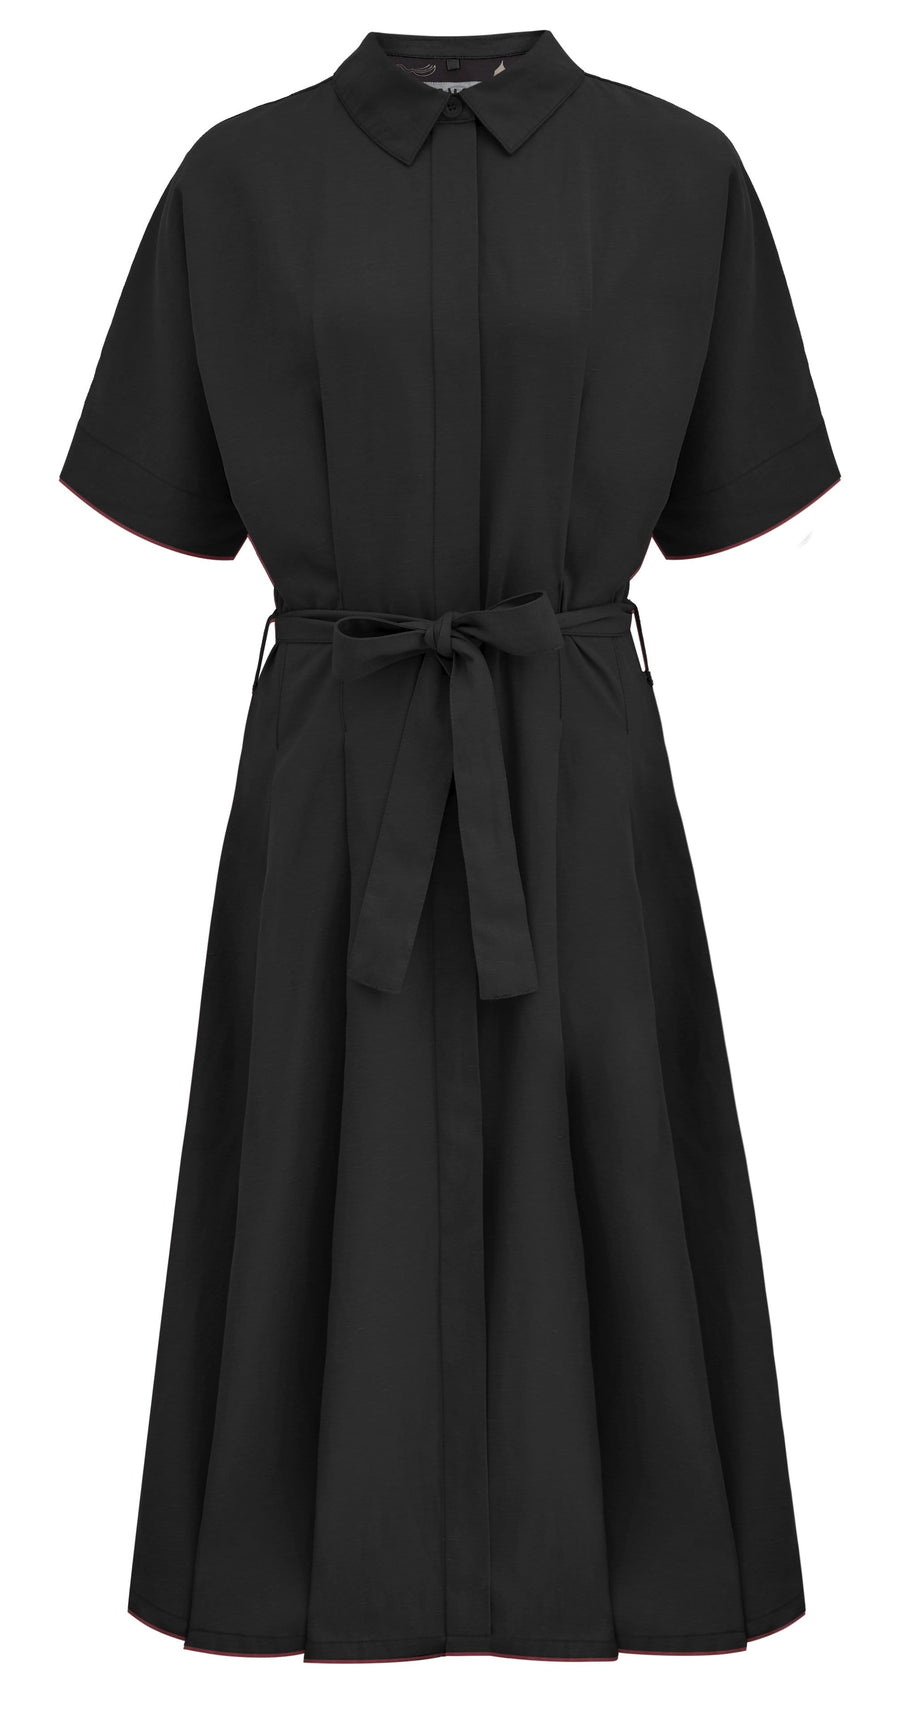 The Yakit Rakit Ltd dresses ASHES KIMONO Wrap Dress in Tencel. sustainable fashion ethical fashion